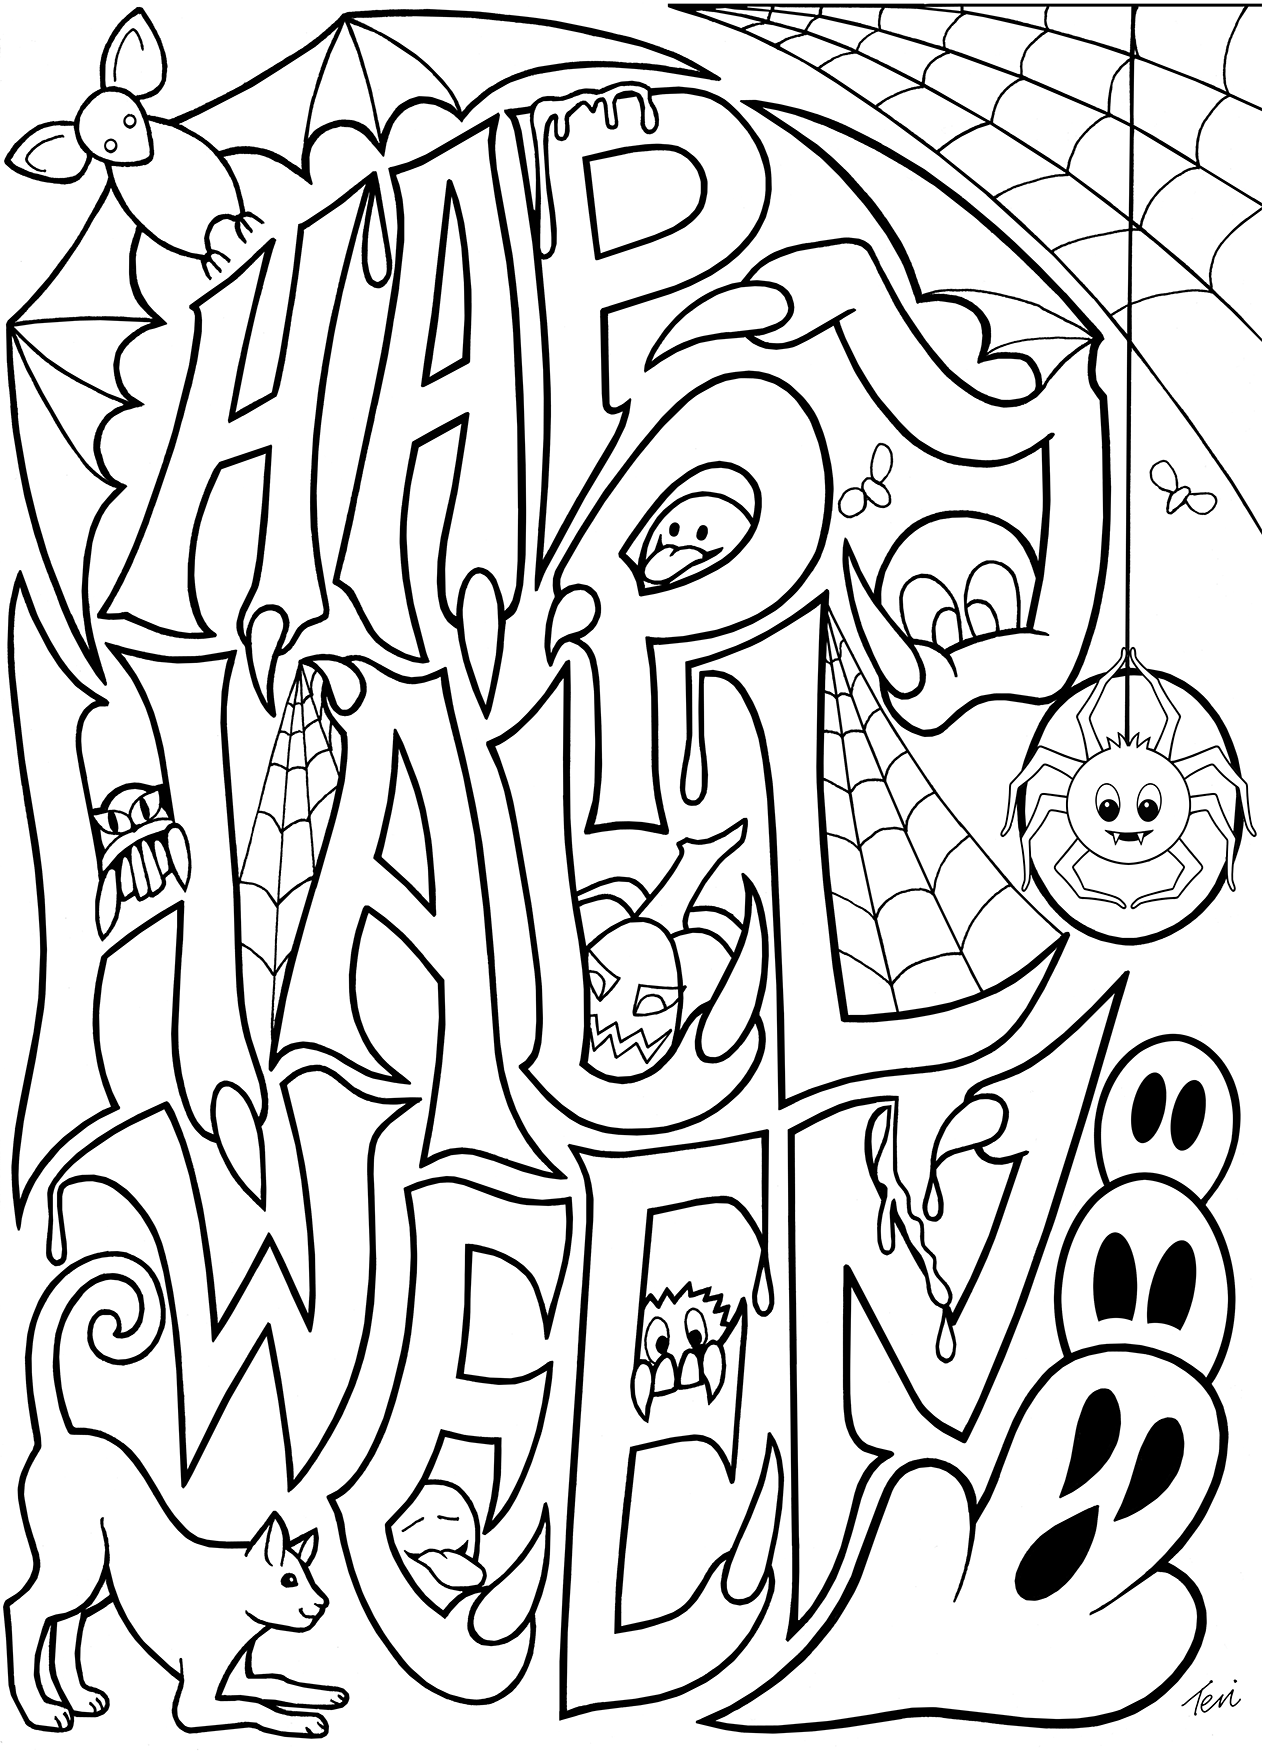 Free Printable Halloween Coloring Pages For Adults Only Collection